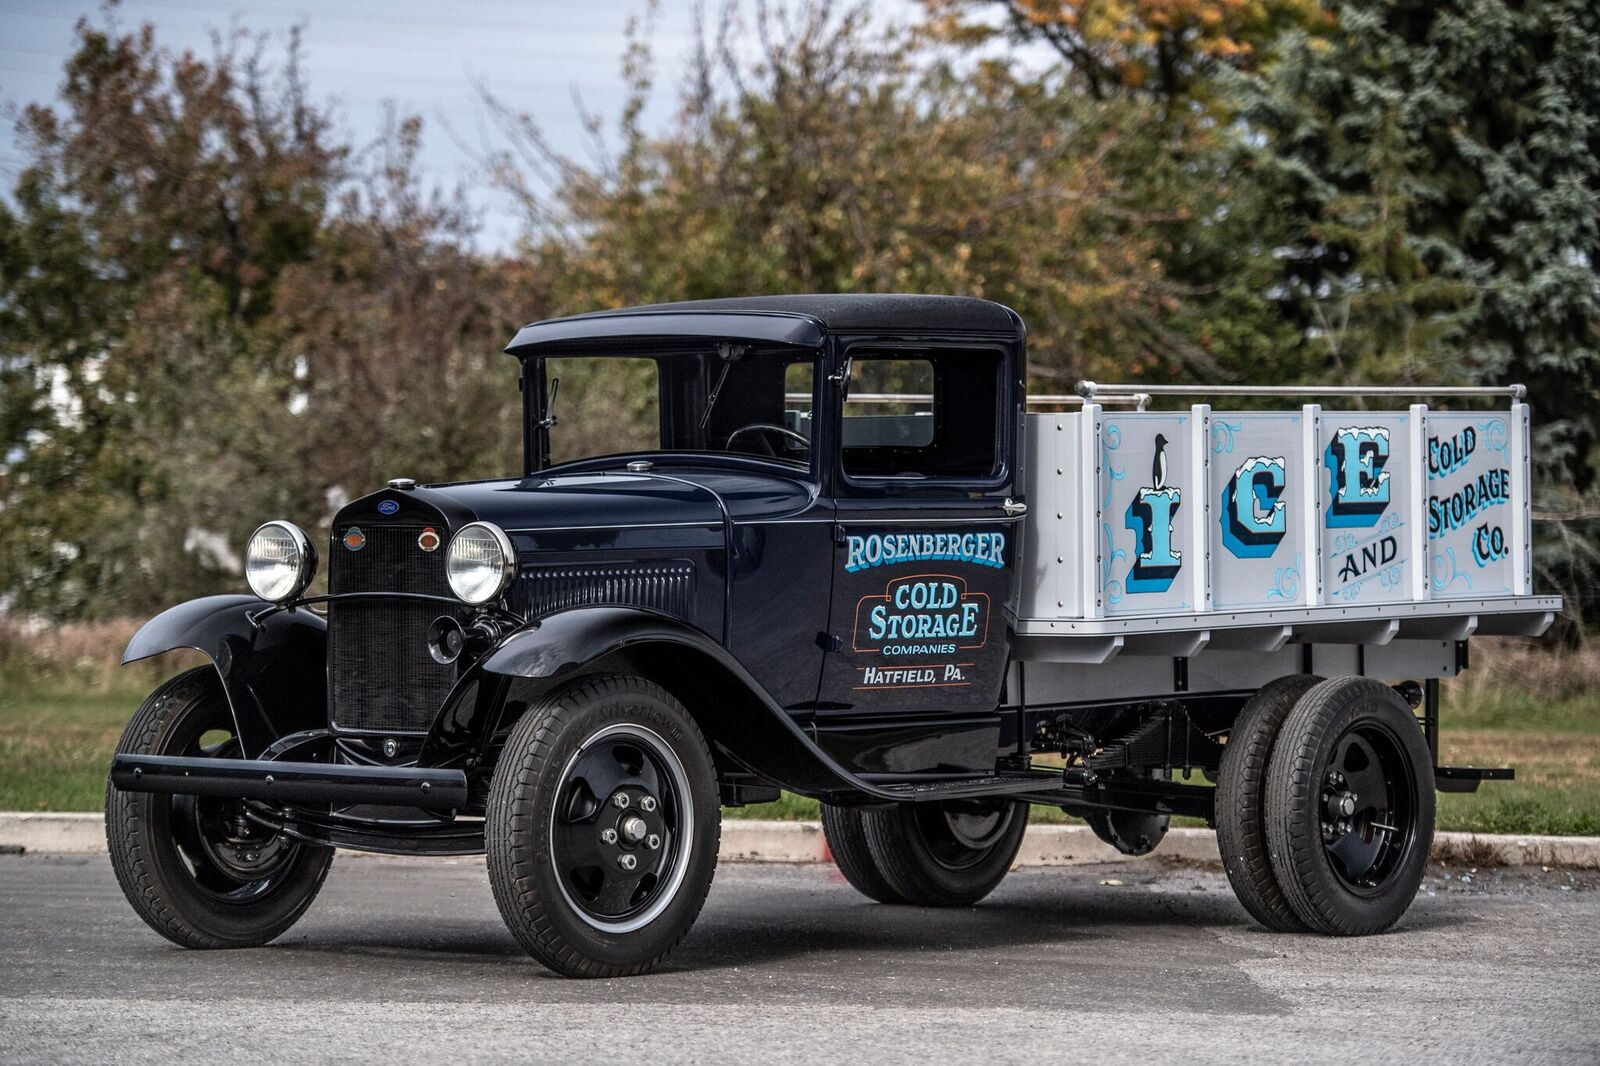 1930 Ford Model AA Ice Truck - Barrett-Jackson Scottsdale